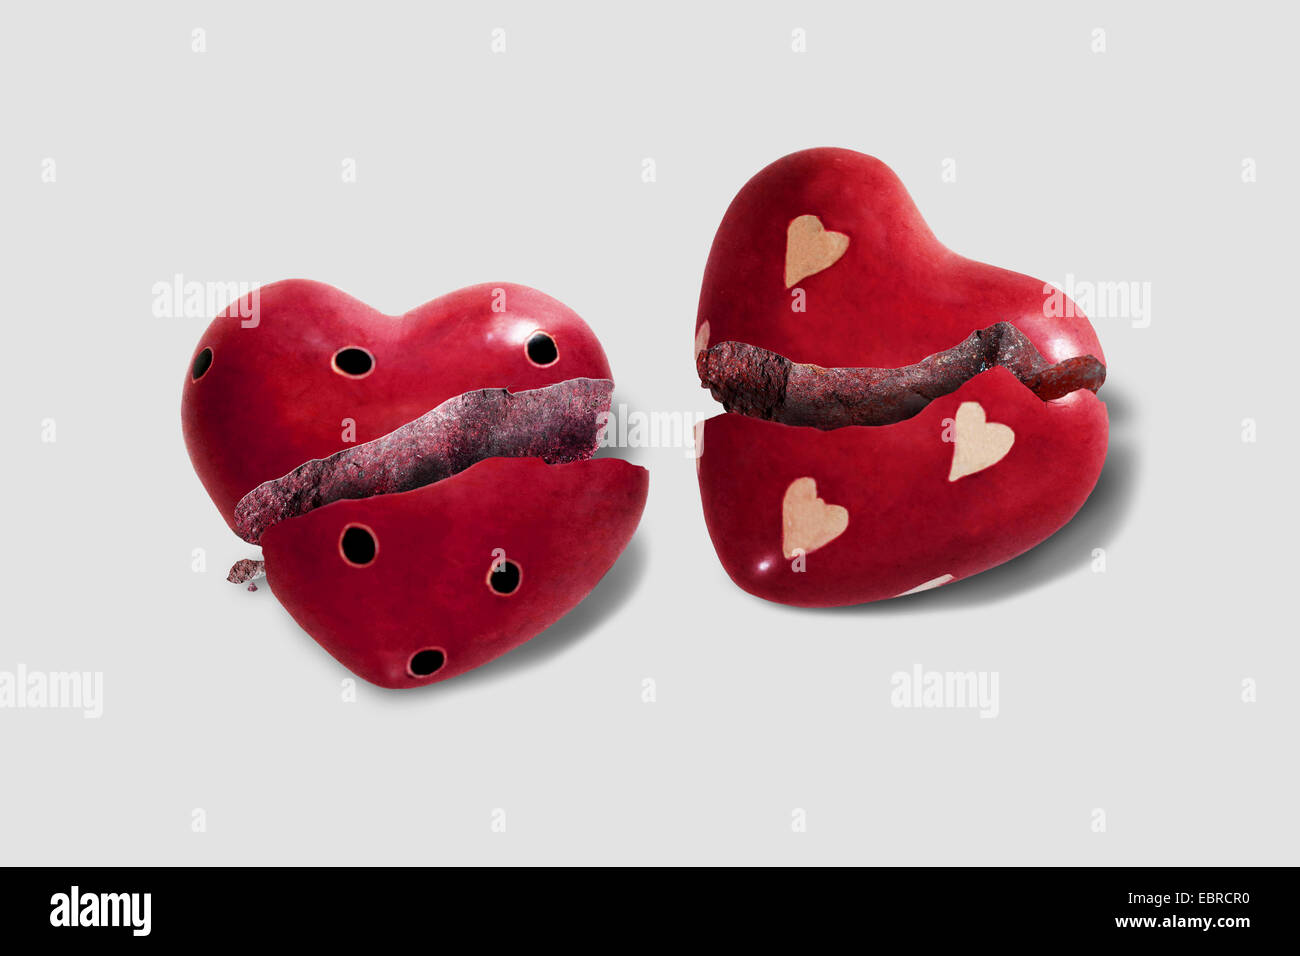 two broken hearts - Stock Image